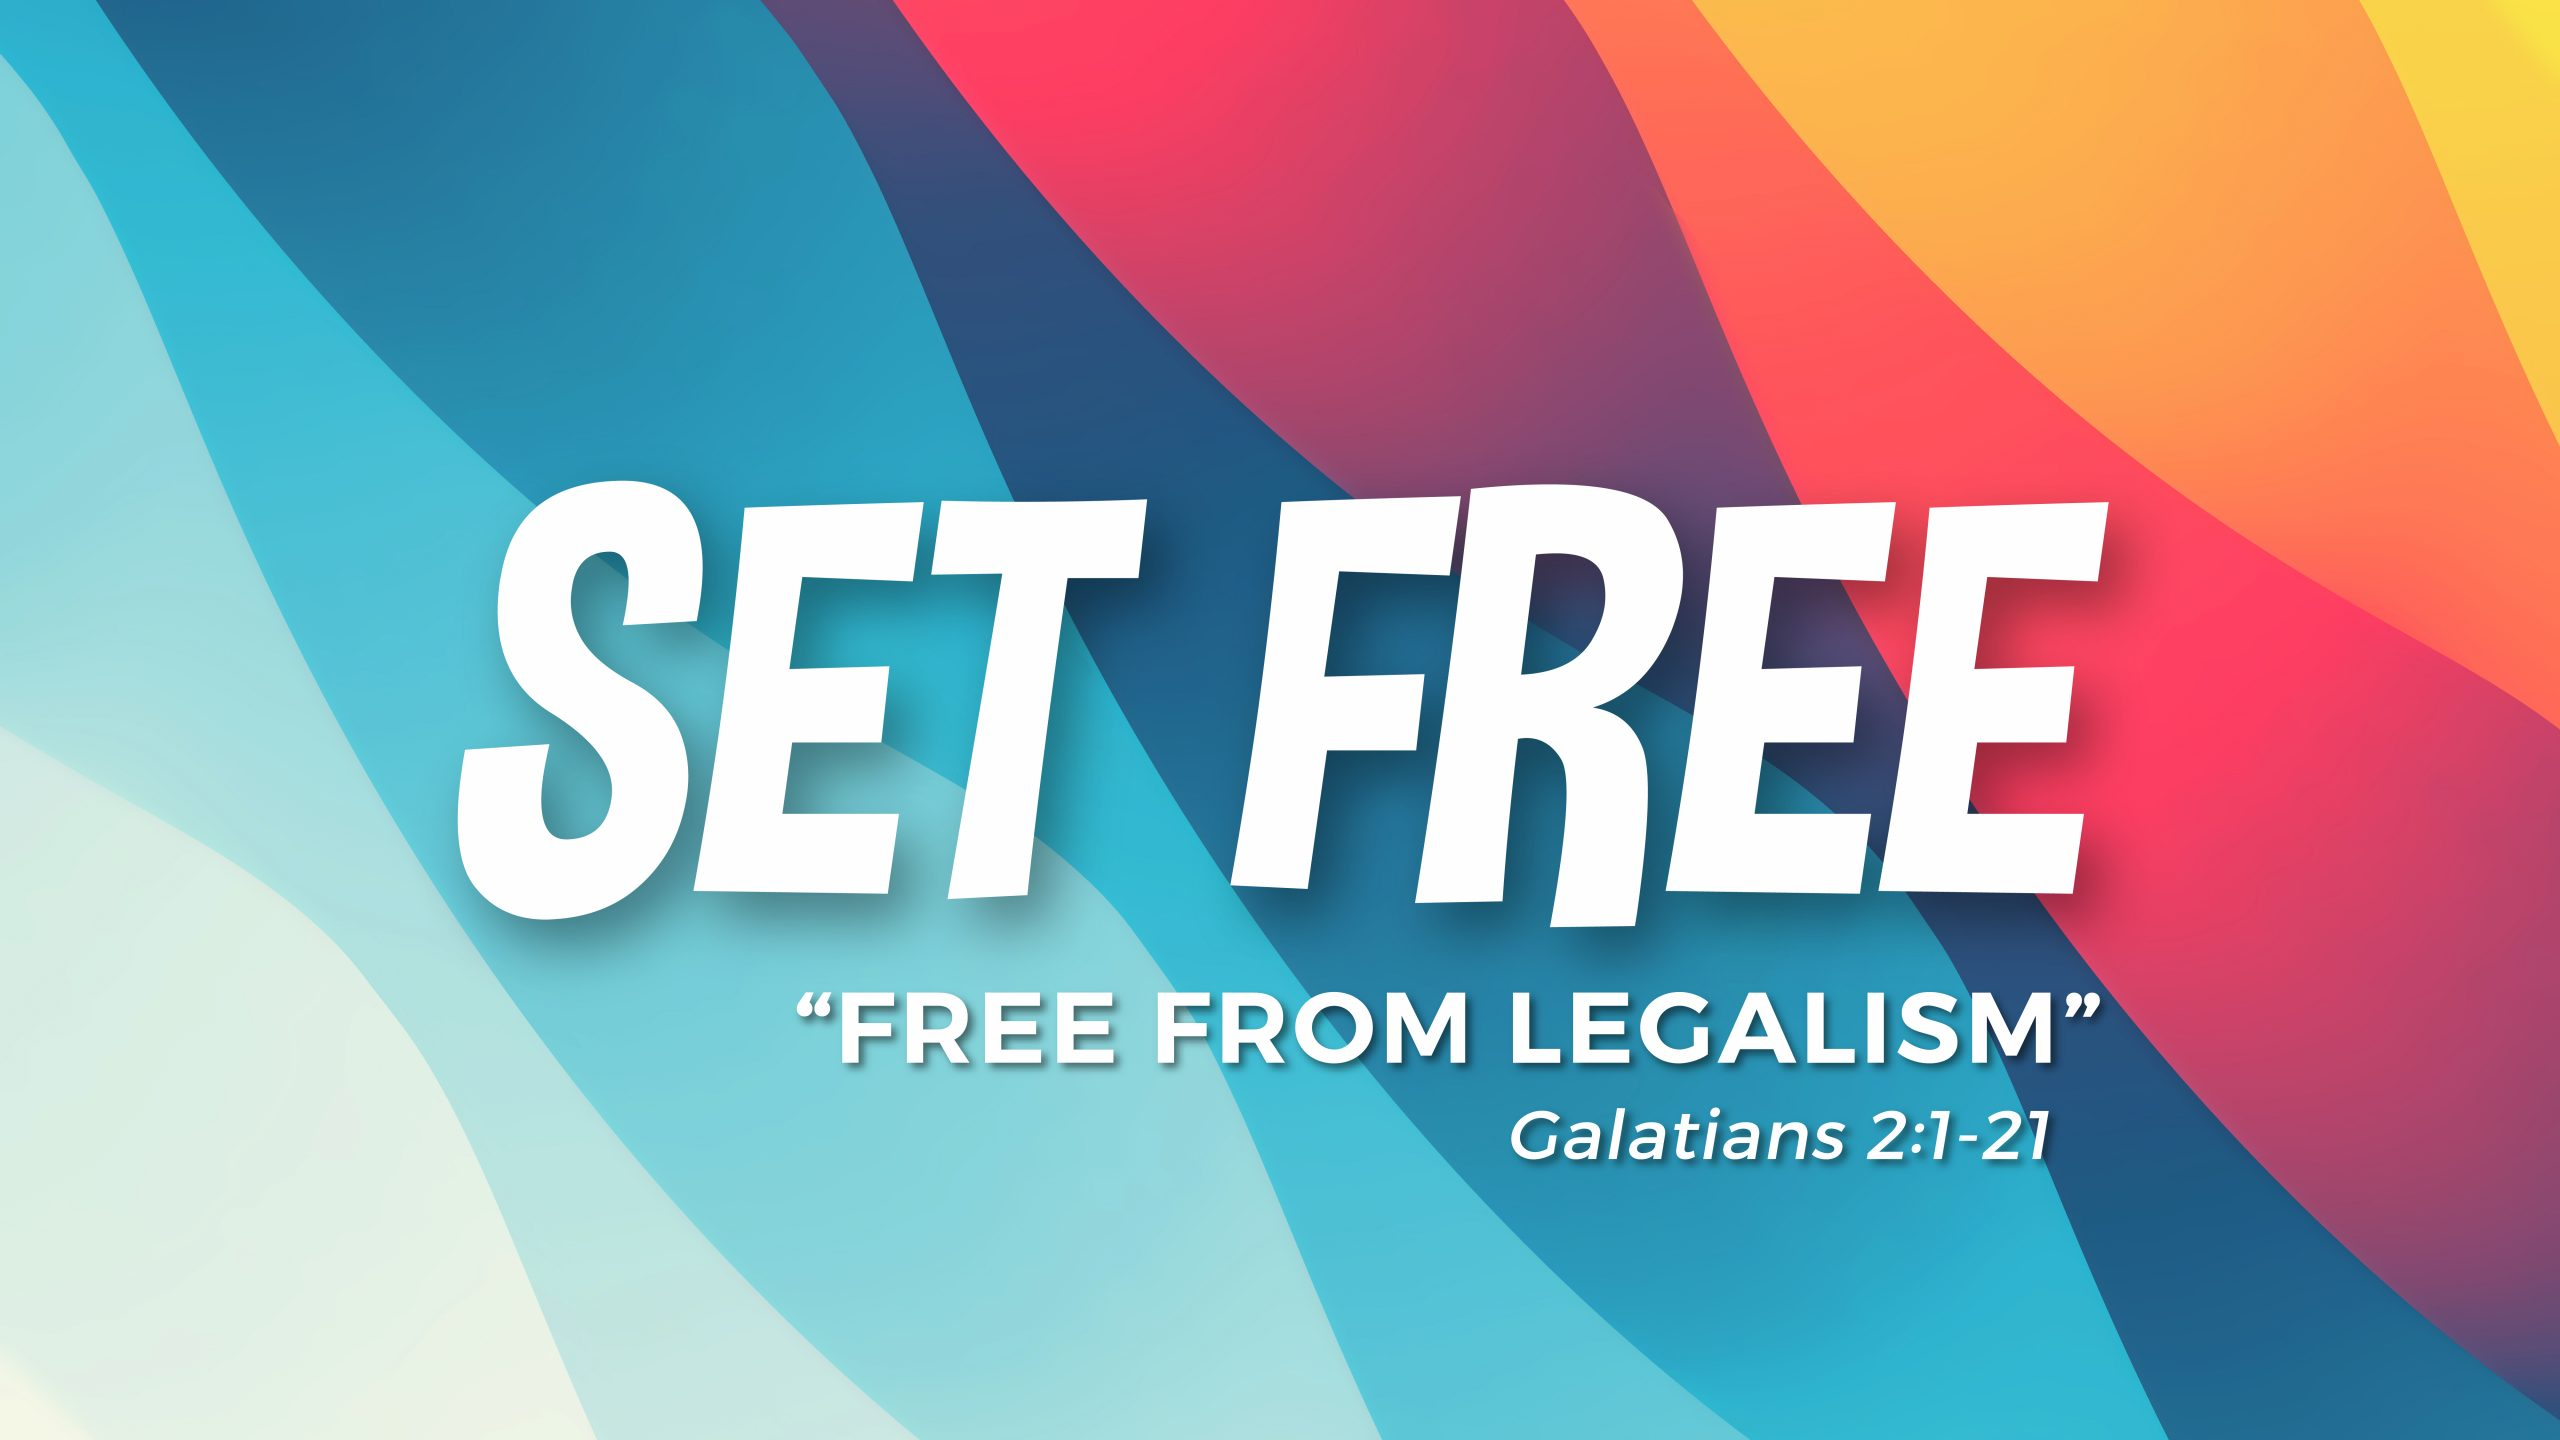 Set Free: Free From Legalism